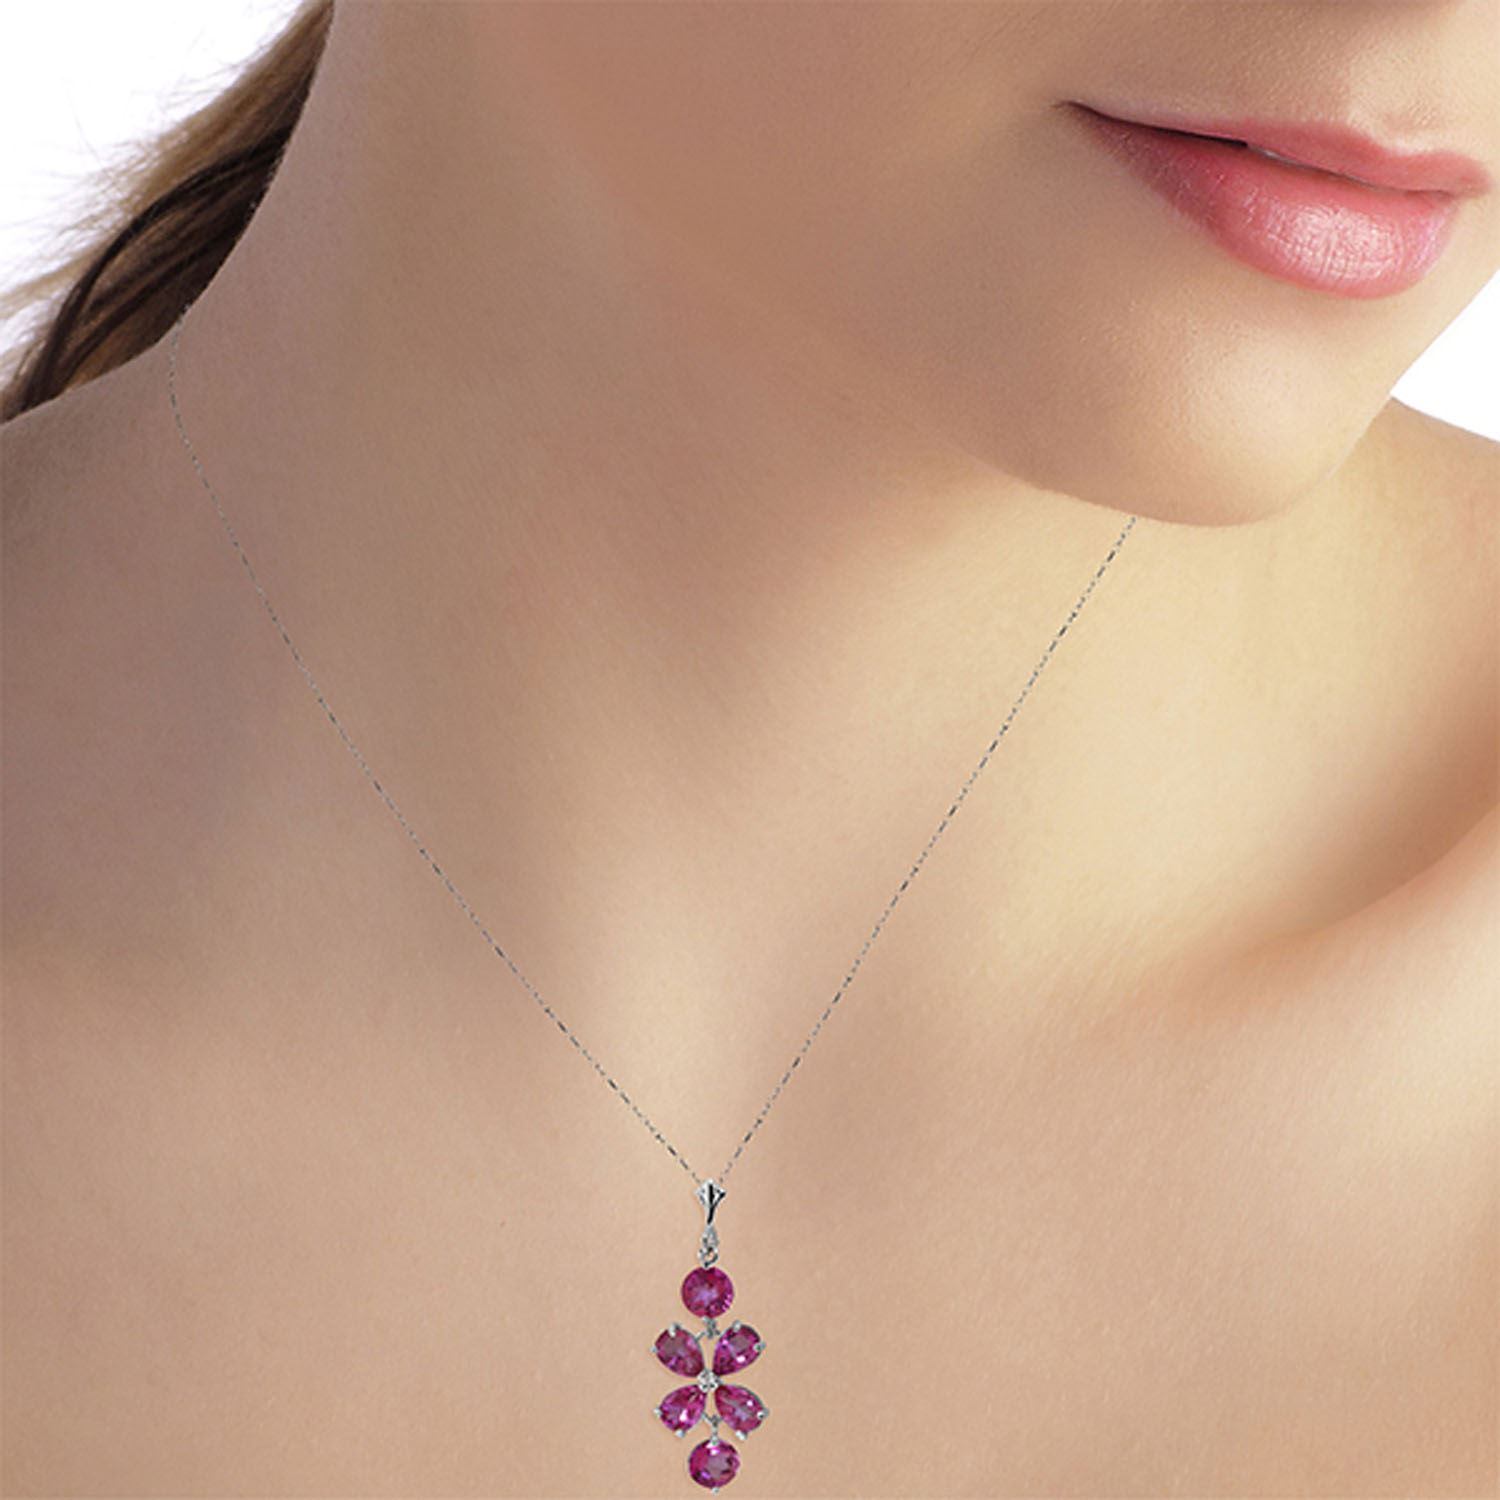 ALARRI 3.15 Carat 14K Solid White Gold Vivian Pink Topaz Necklace with 22 Inch Chain Length